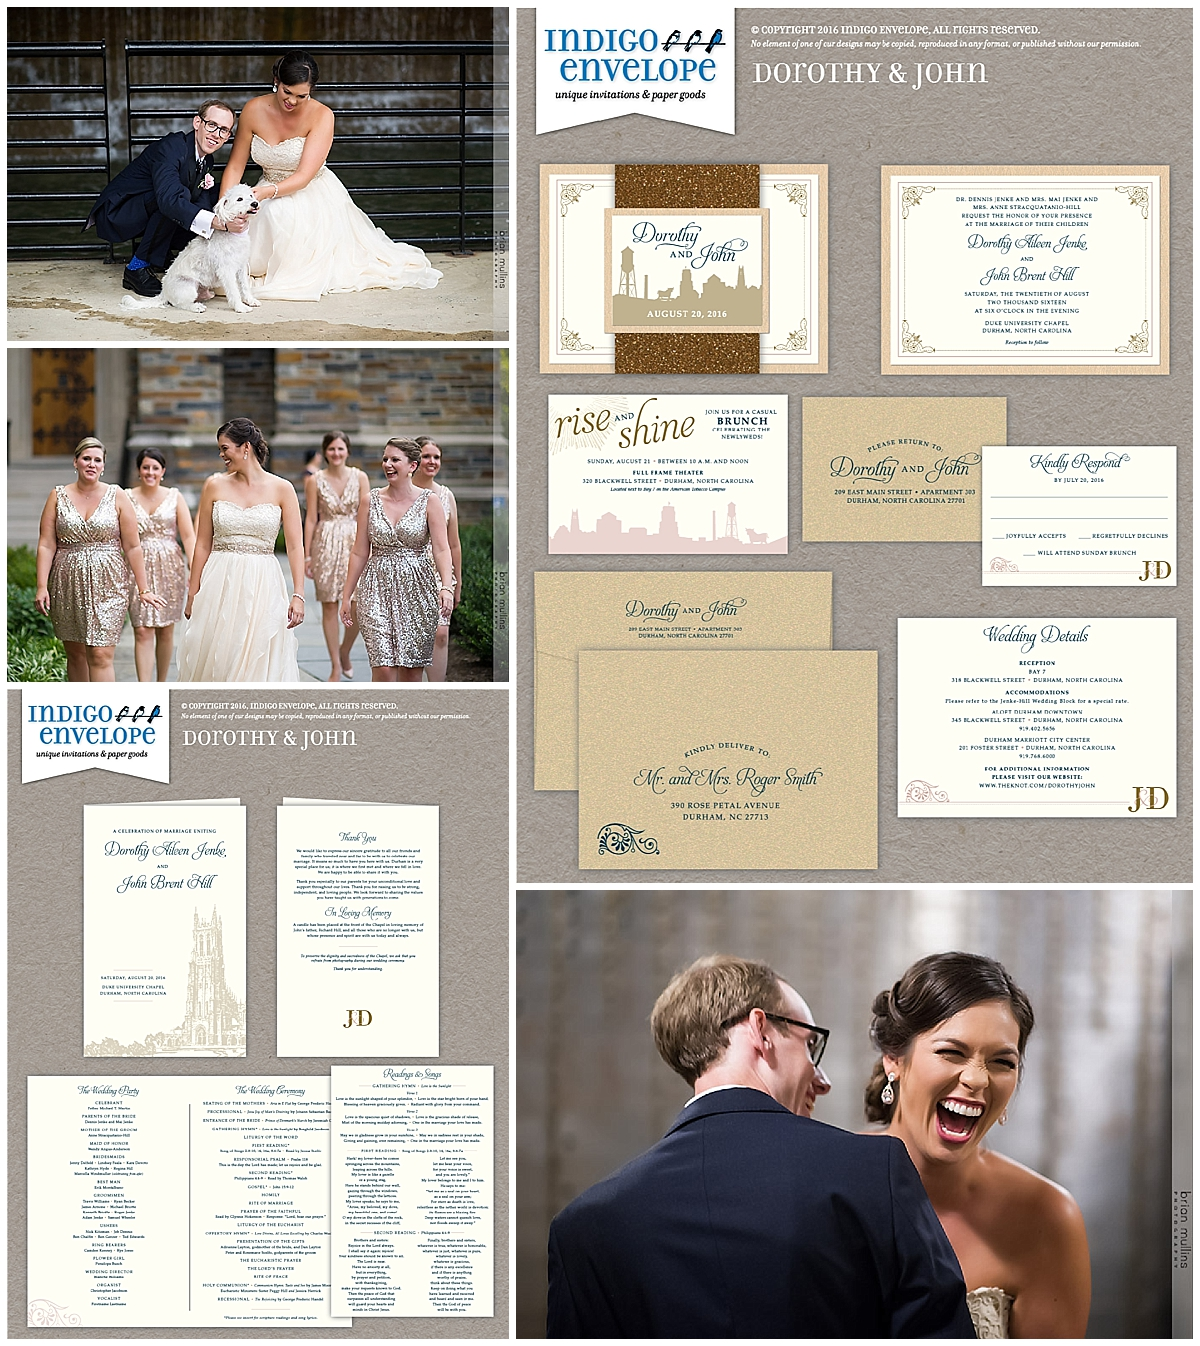 Indigo Envelope - Durham Wedding - Invitation